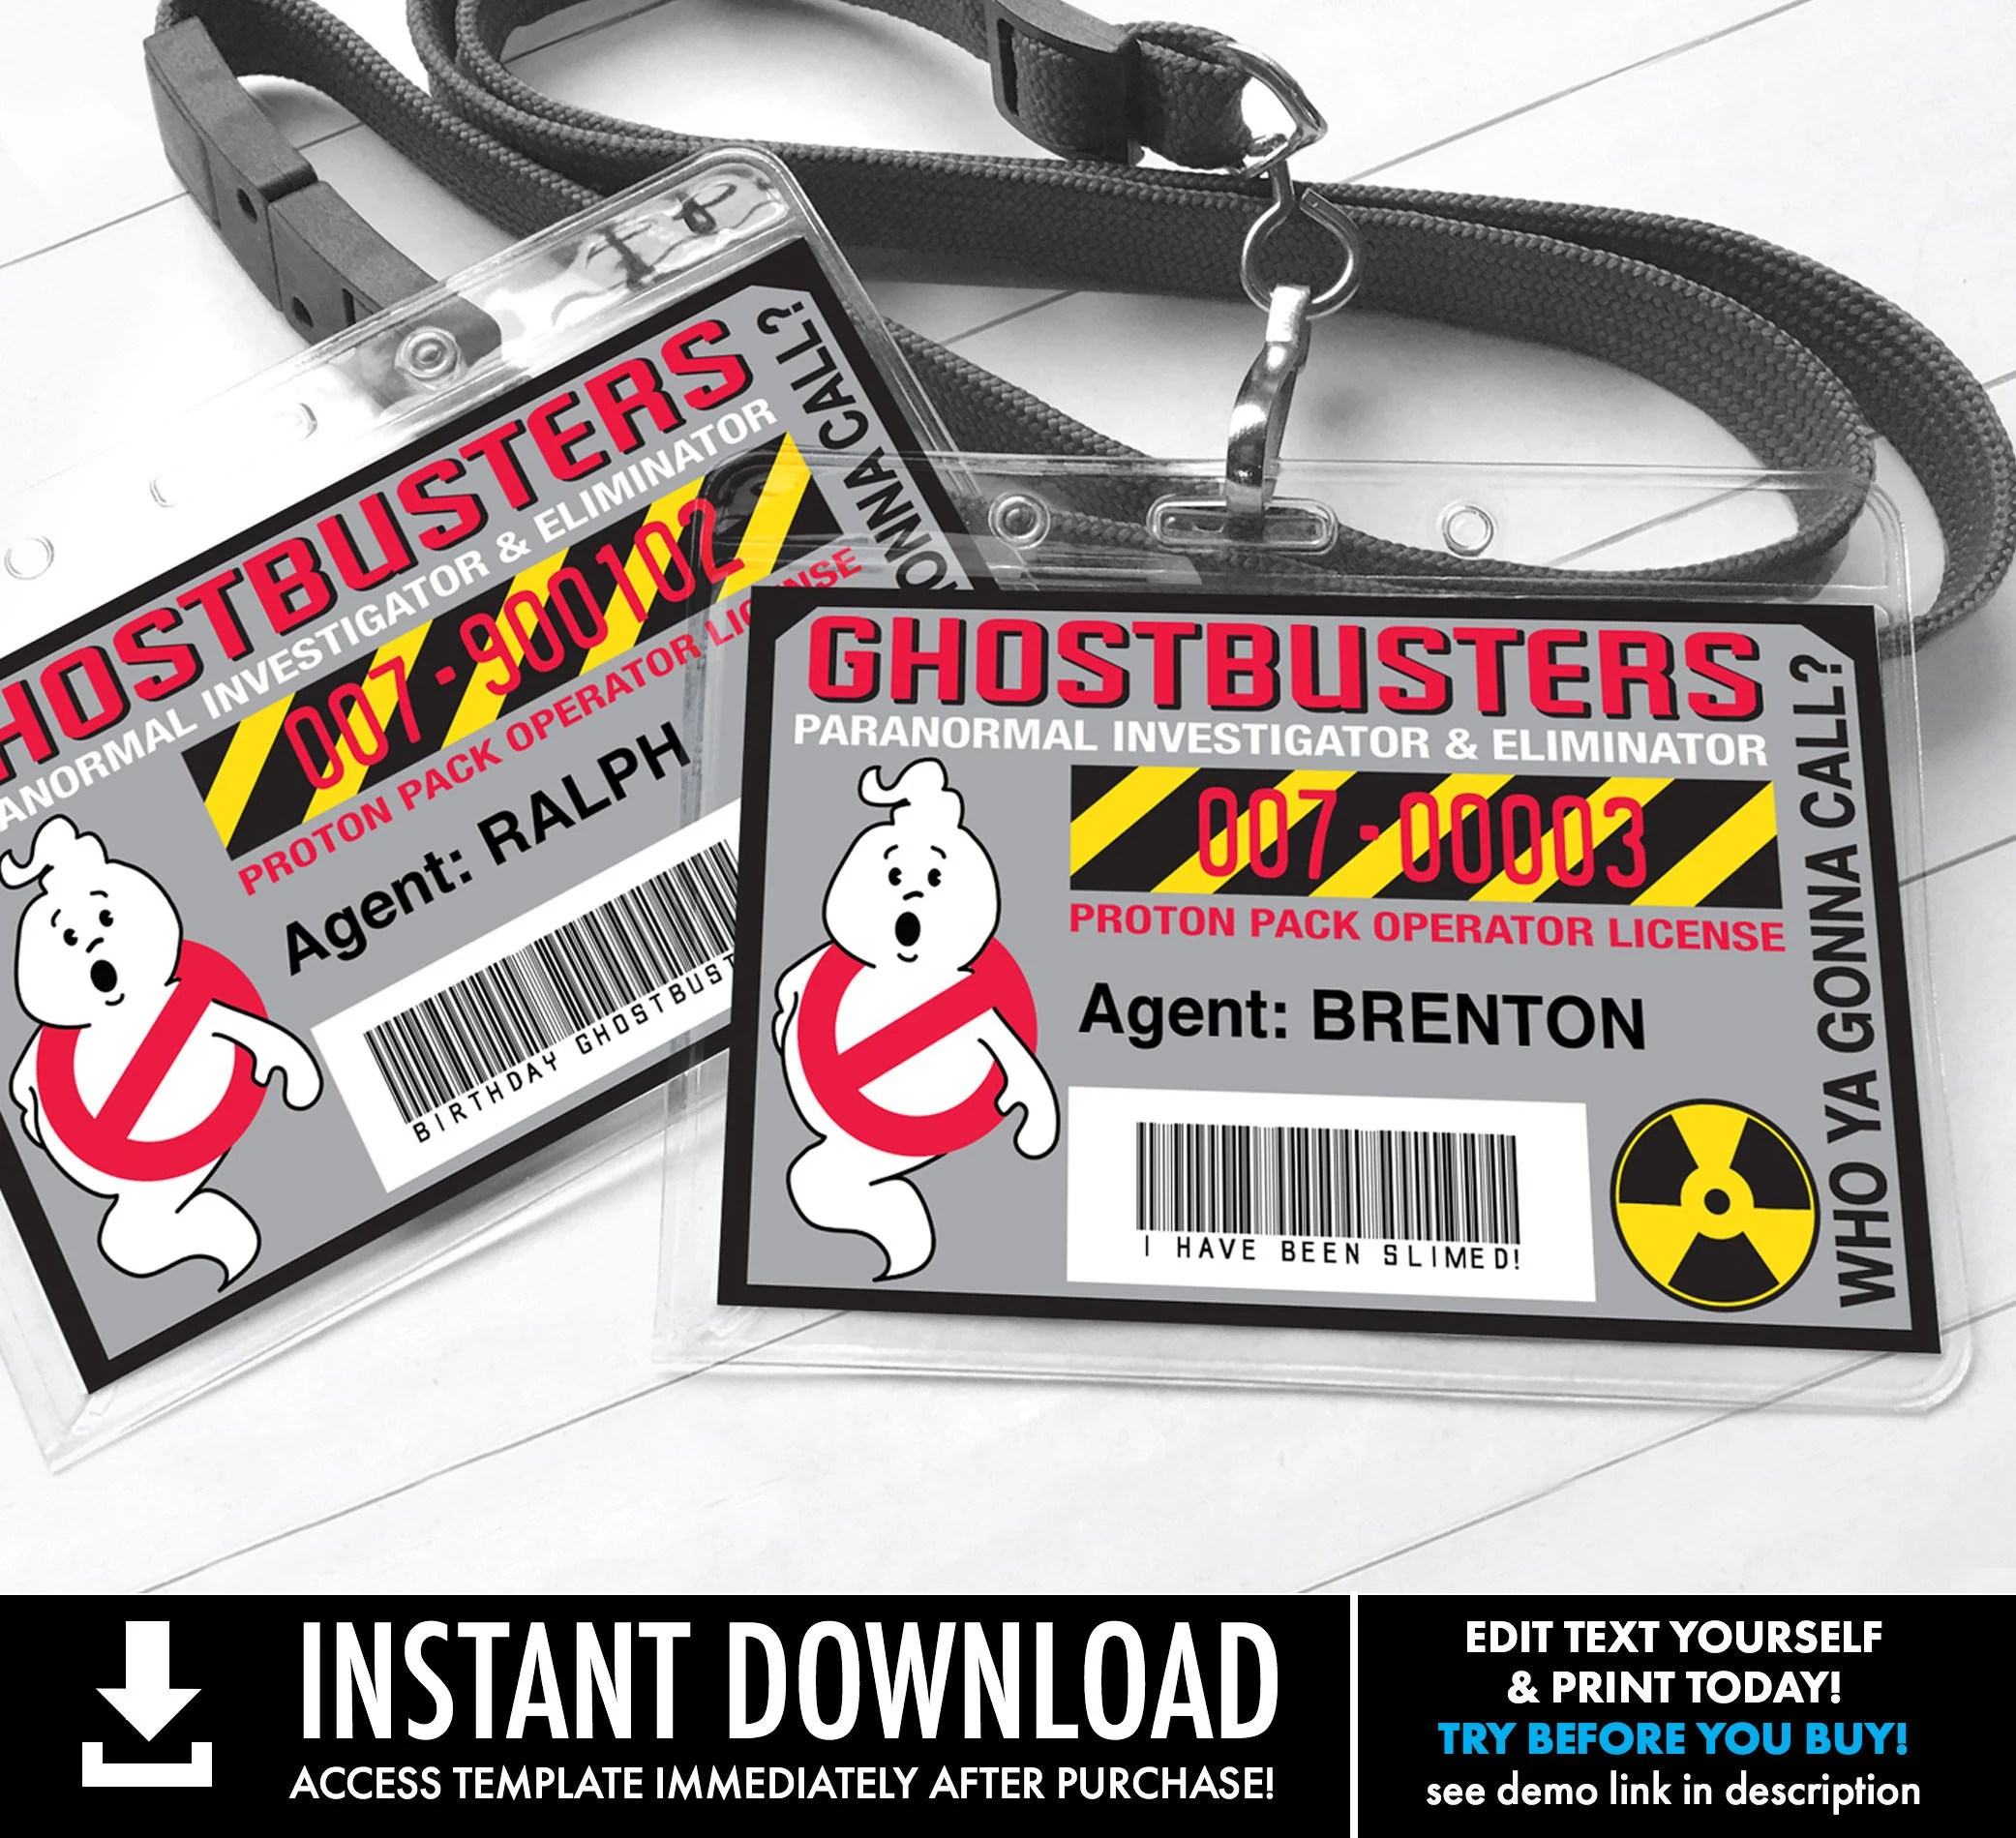 Free online student id card sample. Ghost Buster Badges Ghostbuster I D Badge Ghostbusters Birthday Party Favor Self Edit With Corjl Instant Download Printable Template